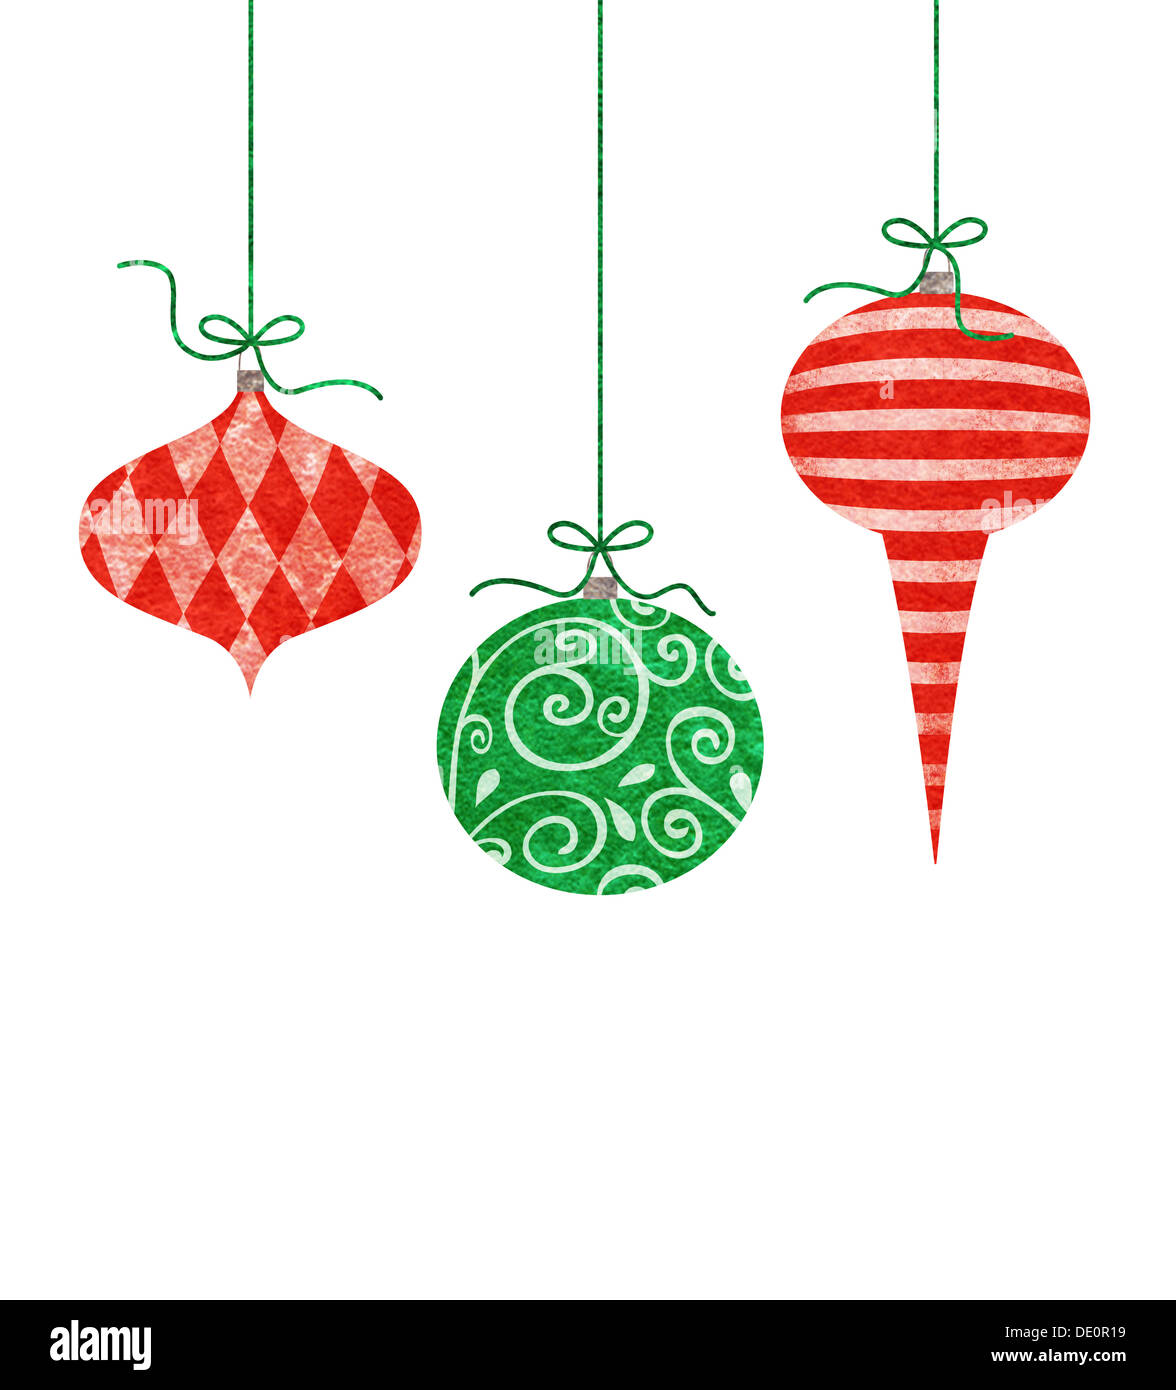 Whimsical Christmas Ornaments.Three Whimsical Christmas Ornaments Stock Photo 60254357